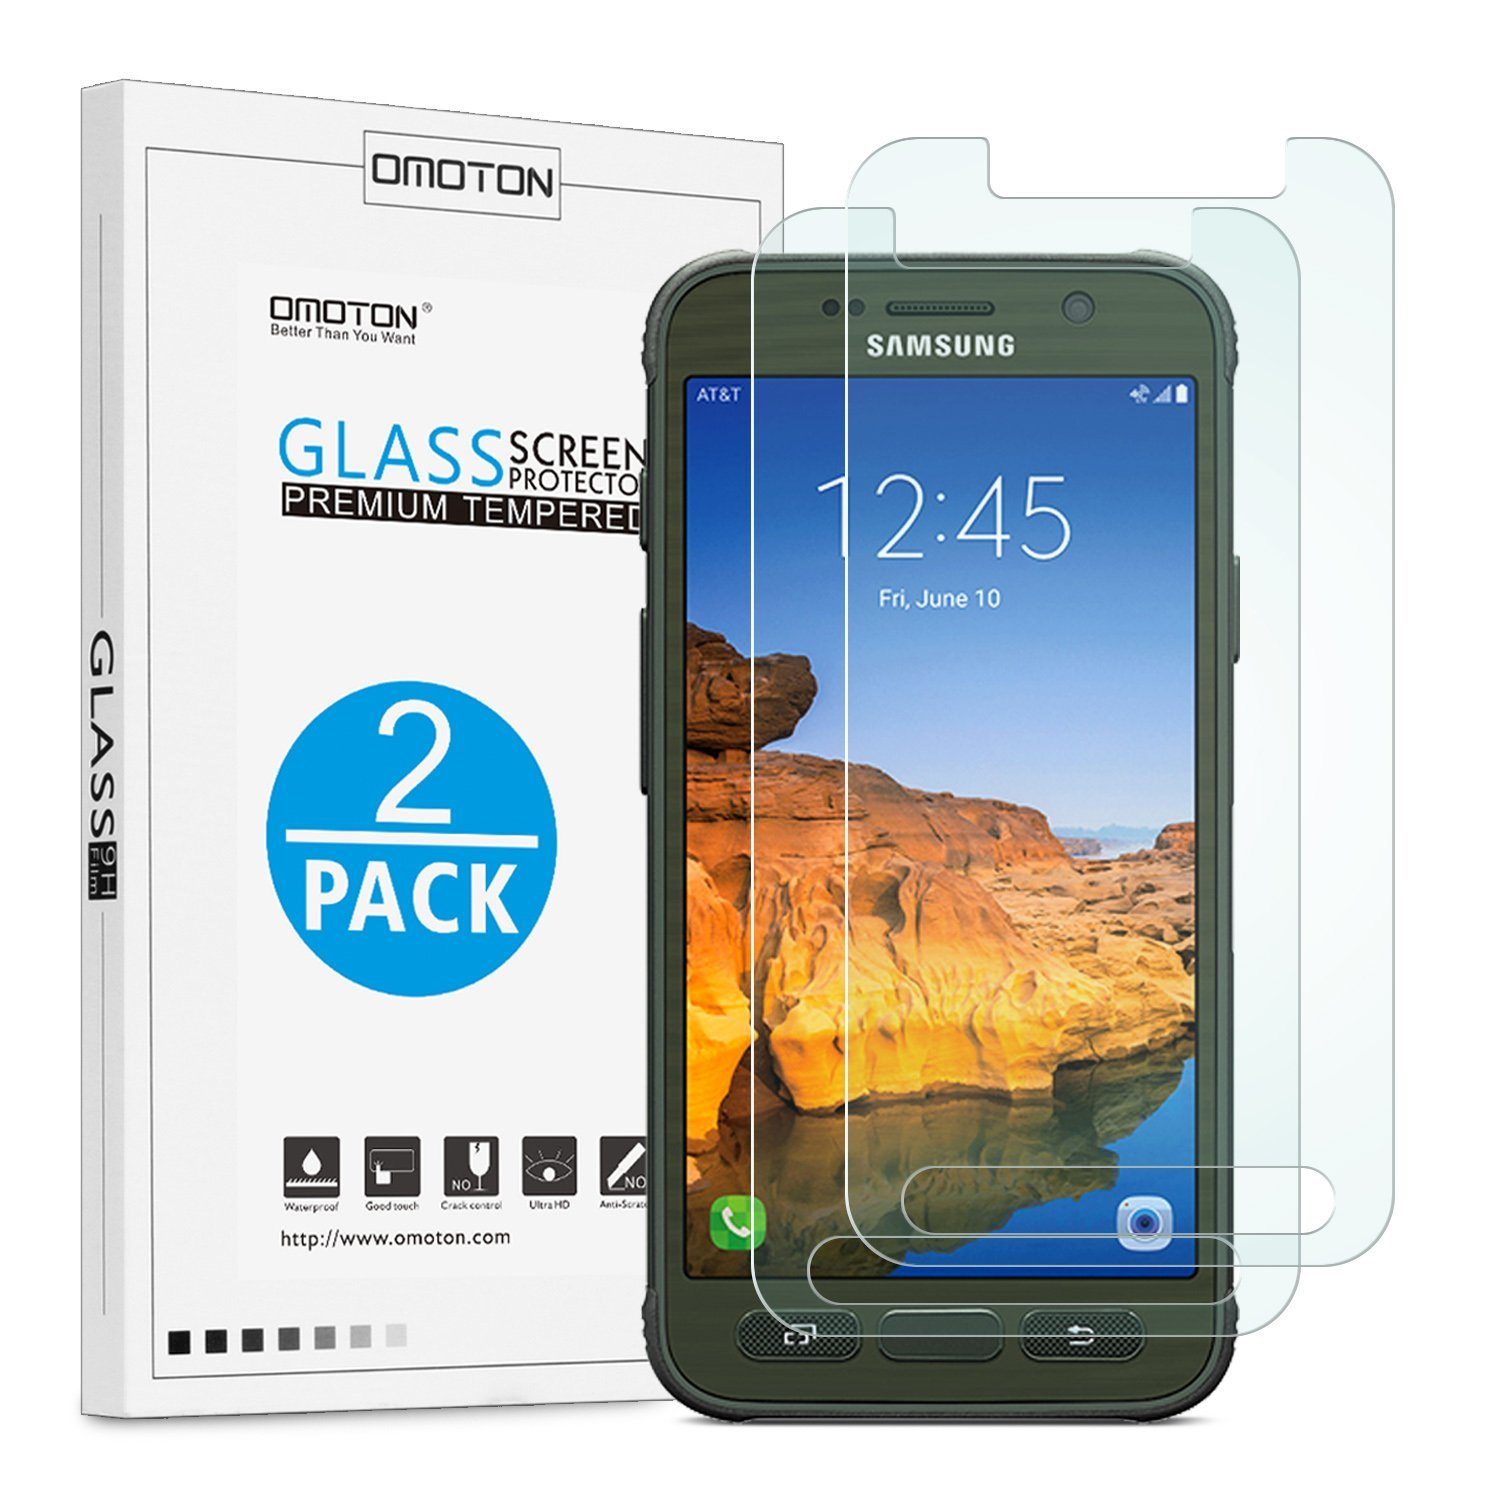 OMOTON ''Samsung Galaxy S7 Active'' Screen Protector [2 PACK], Tempered Glass Screen Protector for ''Galaxy S7 Active'' with [High Definition] [Bubble Free] [9H Hard], Not Fit for Galaxy S7, S7 Edge